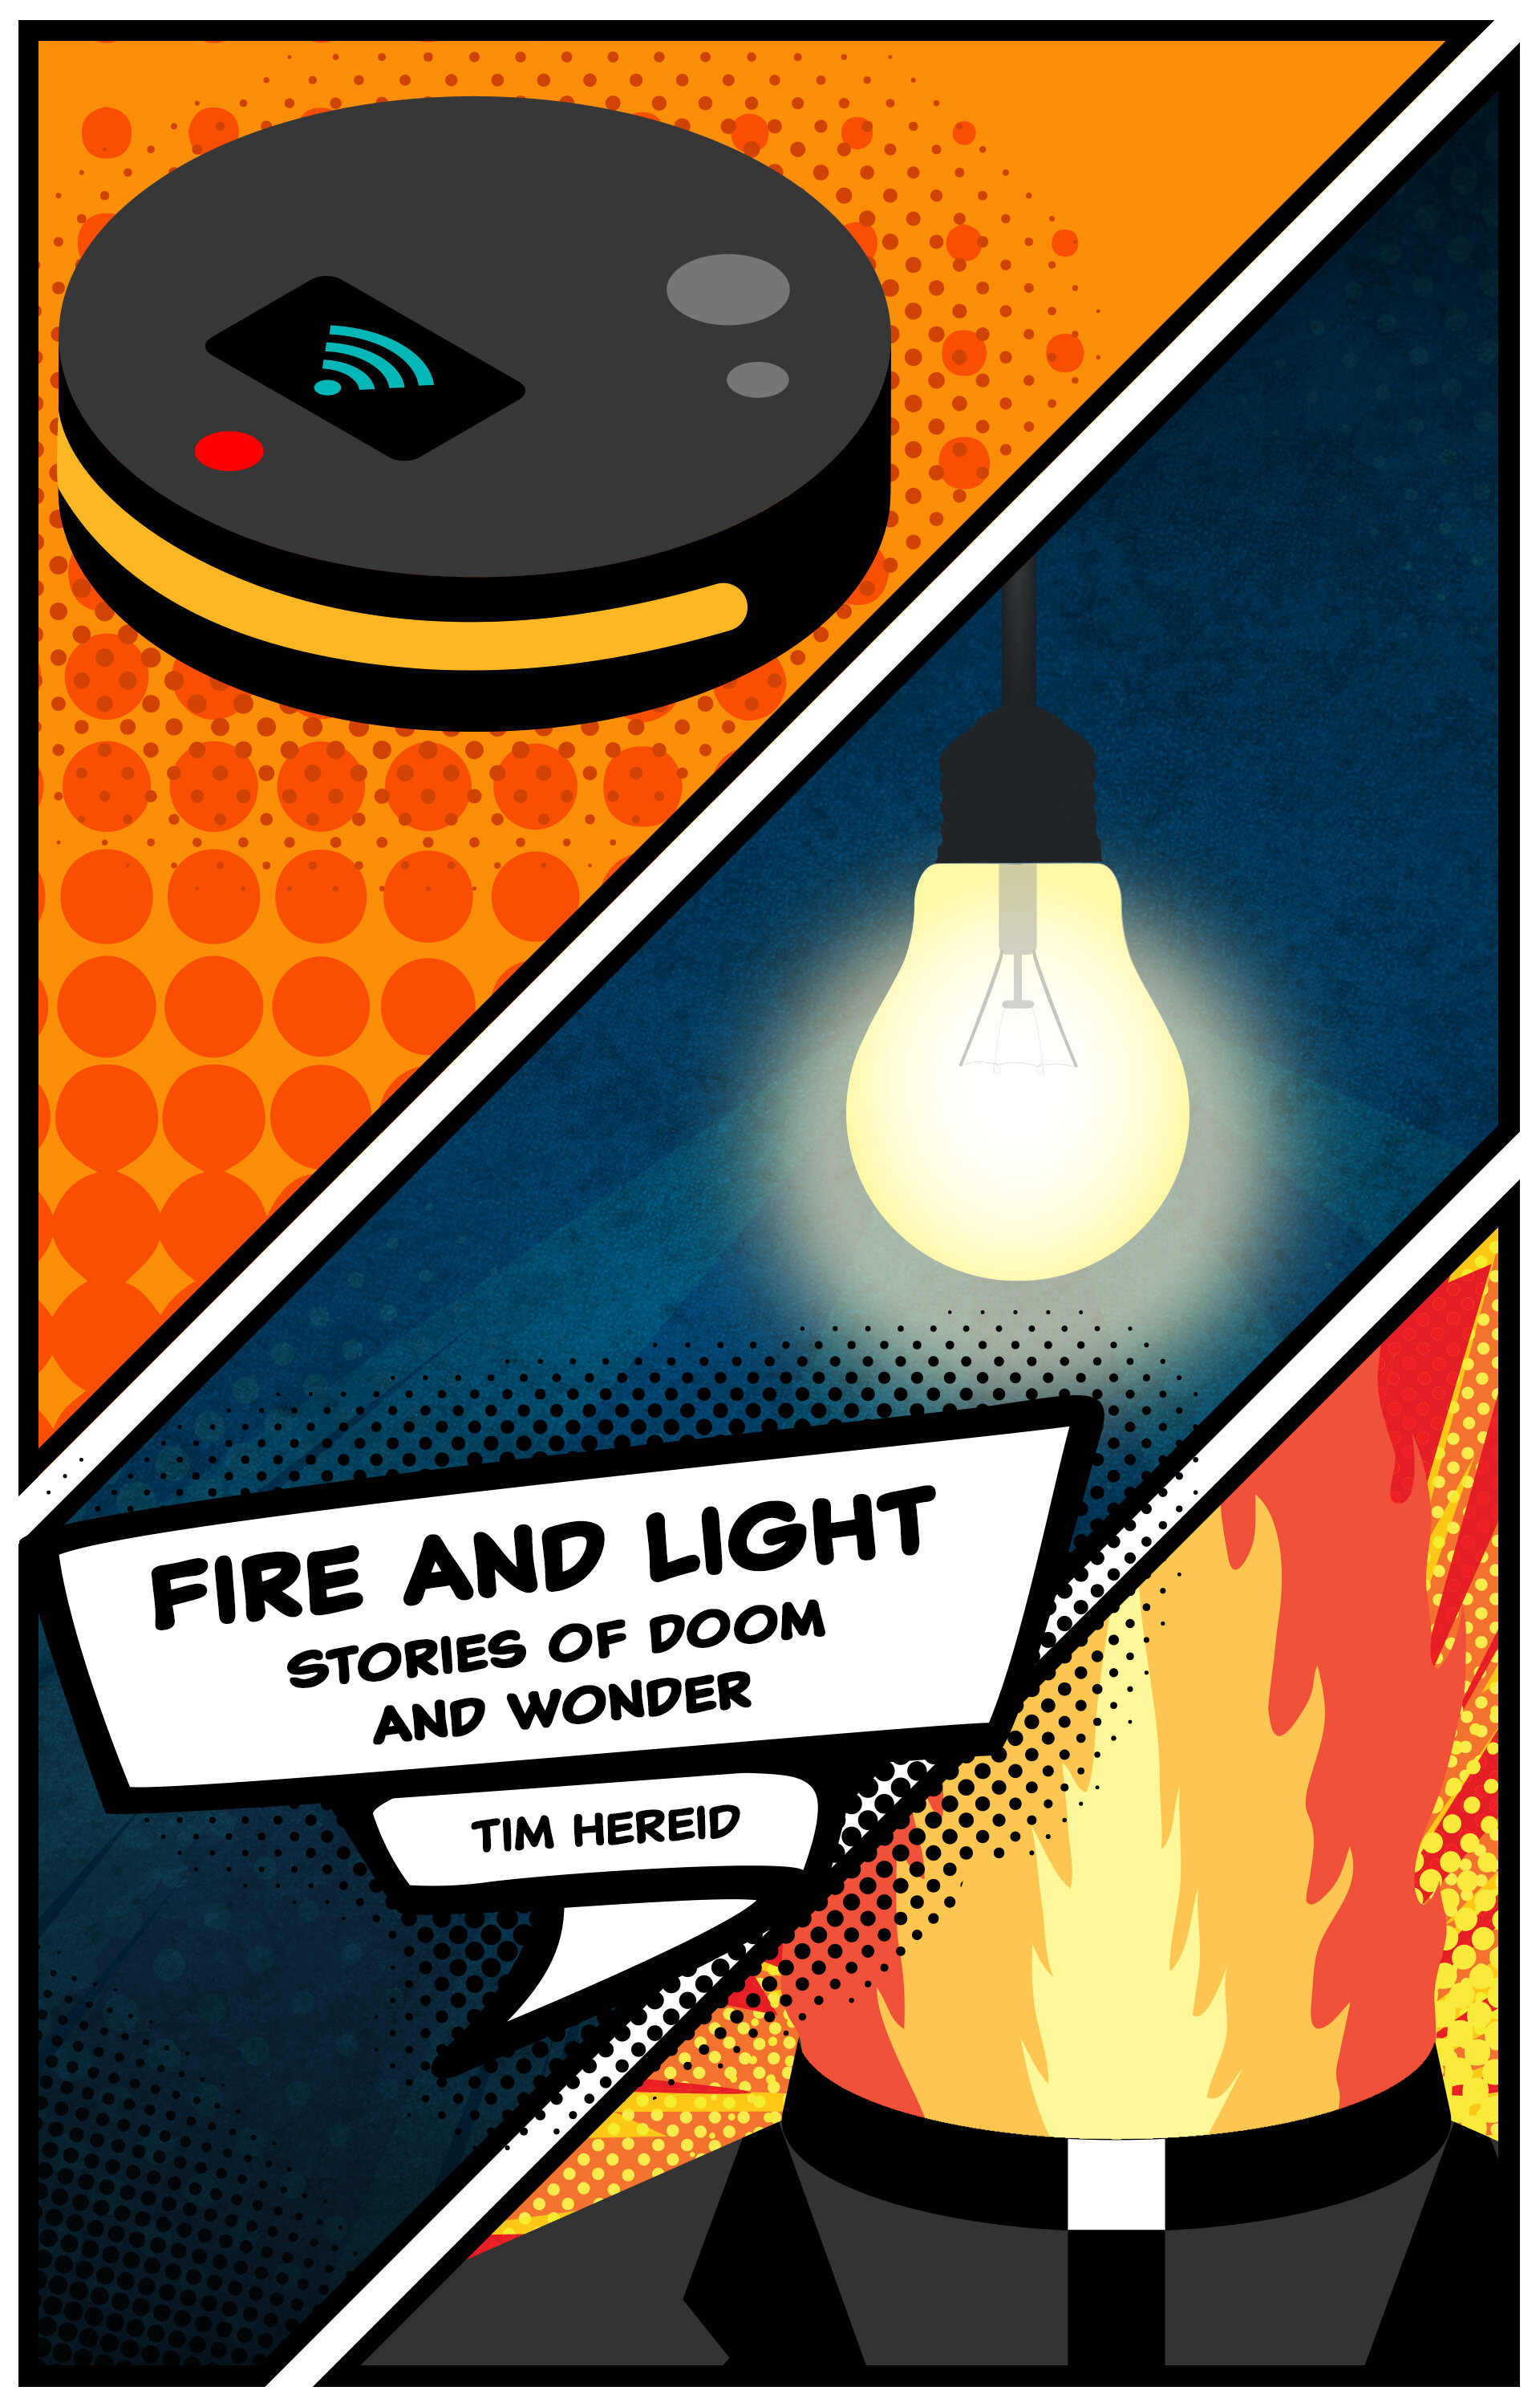 Fire & Light - Stories of Doom and WonderWhat could a half-sentient robot, a telepathic witness to a brutal crime and an anti-fracking priest have in common? A little bit, as it turns out. Enough, at least, to bump shoulders in this short collection of adventure, mind-reading, tech-futurism, murder and...more murder…SORRY I DIDNT GET THAT: When an enthusiastic homeowner purchases the Consuelo CleanTalk Maidbot, Conseuelo gets right to work creating a cleaner and more connected home, but a life-threatening disaster puts Consuelo's cutting edge features to the dubious task of saving its owner's life.In Your Head: Mr. Gerke doesn't want to speak to the police. The feeling is mutual. When Mr. Gerke presents wild but compelling evidence about a major crime, Detectives Kelly Hargrave and Gary Schmacek have little choice but to hear him out, no matter where Gerke's twisting tale leads.You Have the People You Have: Crofton had a small town hero, a young, hardworking priest who came to the local Catholic parish to do more than just deliver homilies and hand out communion. Then something happened in Crofton, something terrible, something the residents don't like to talk about.